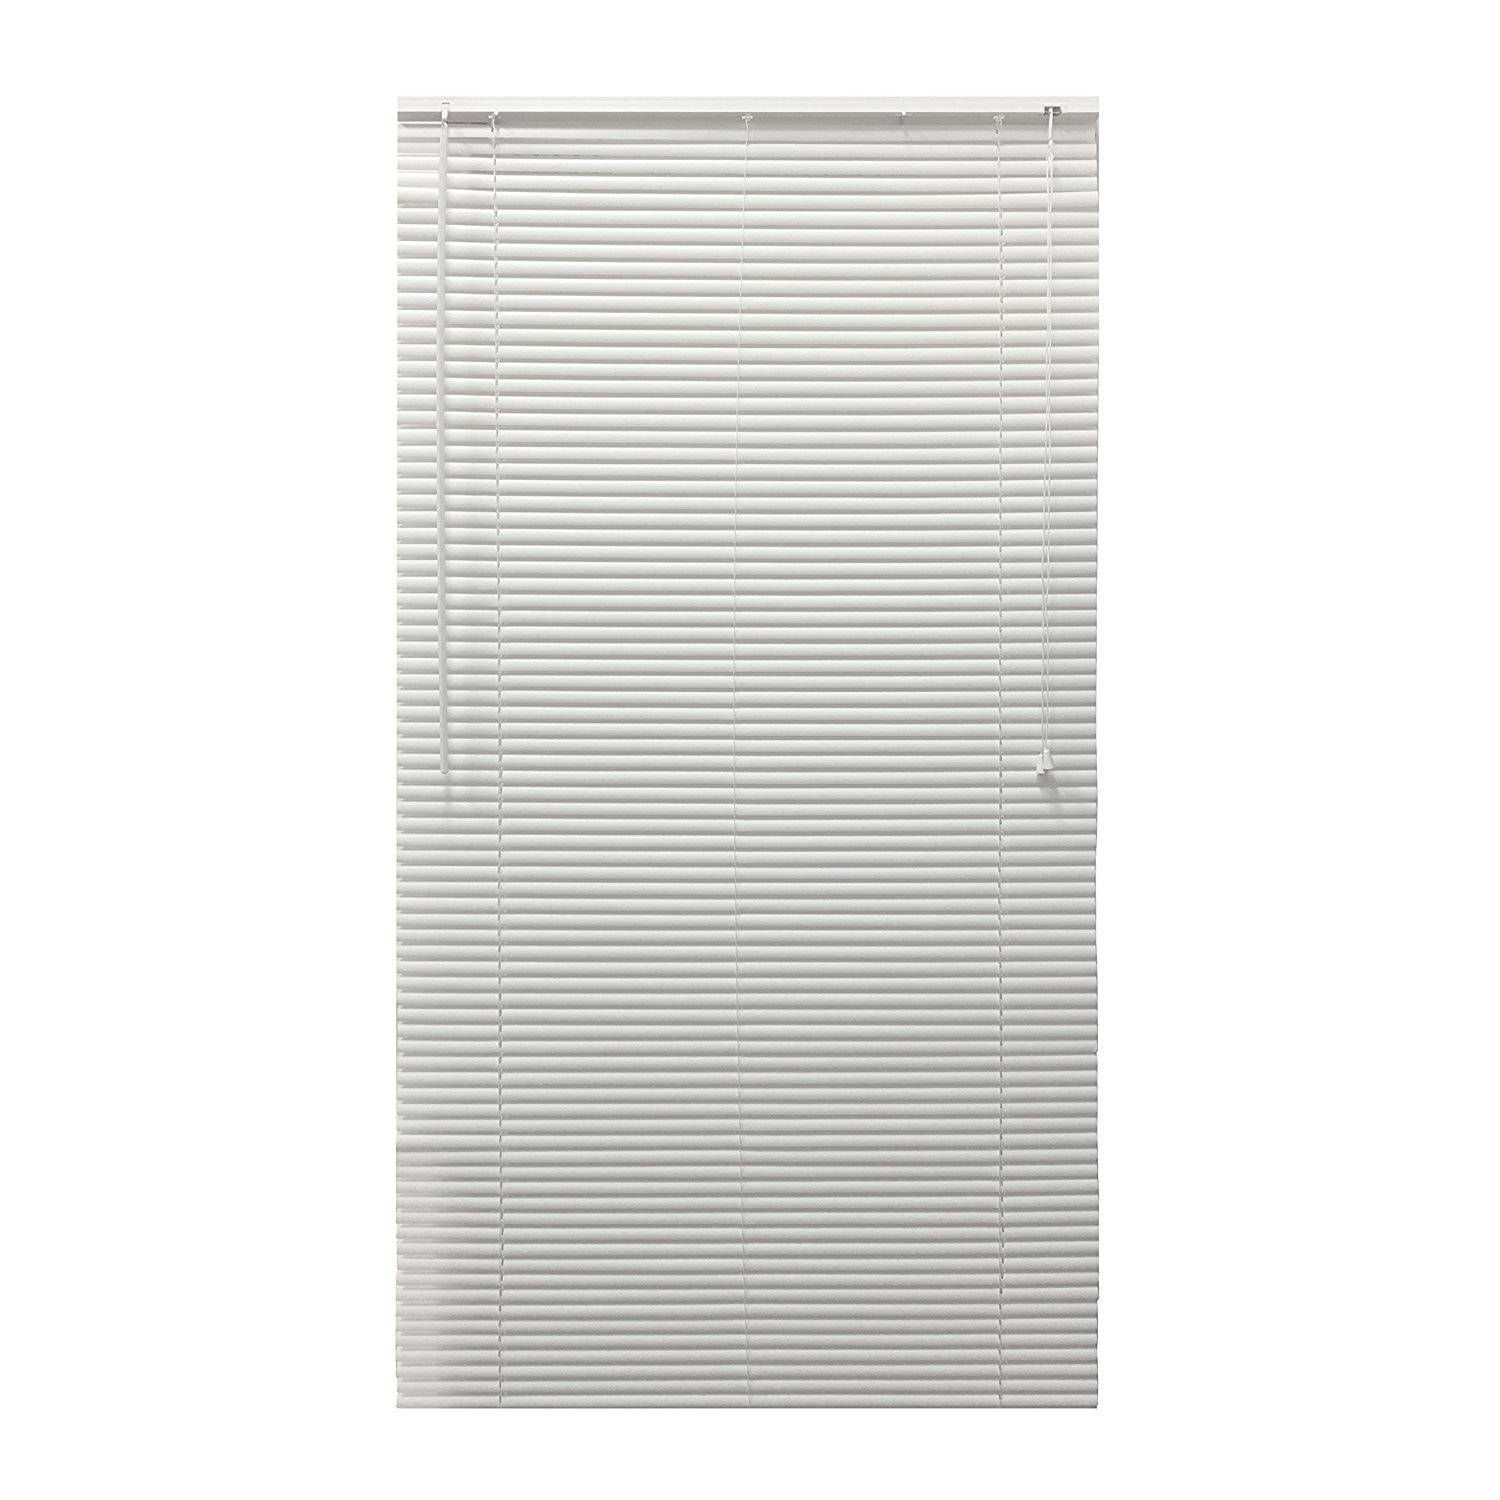 36 inch window blinds - Aleko 36 X 72 In Smooth Horizontal Window Blinds 1 Inch Slats